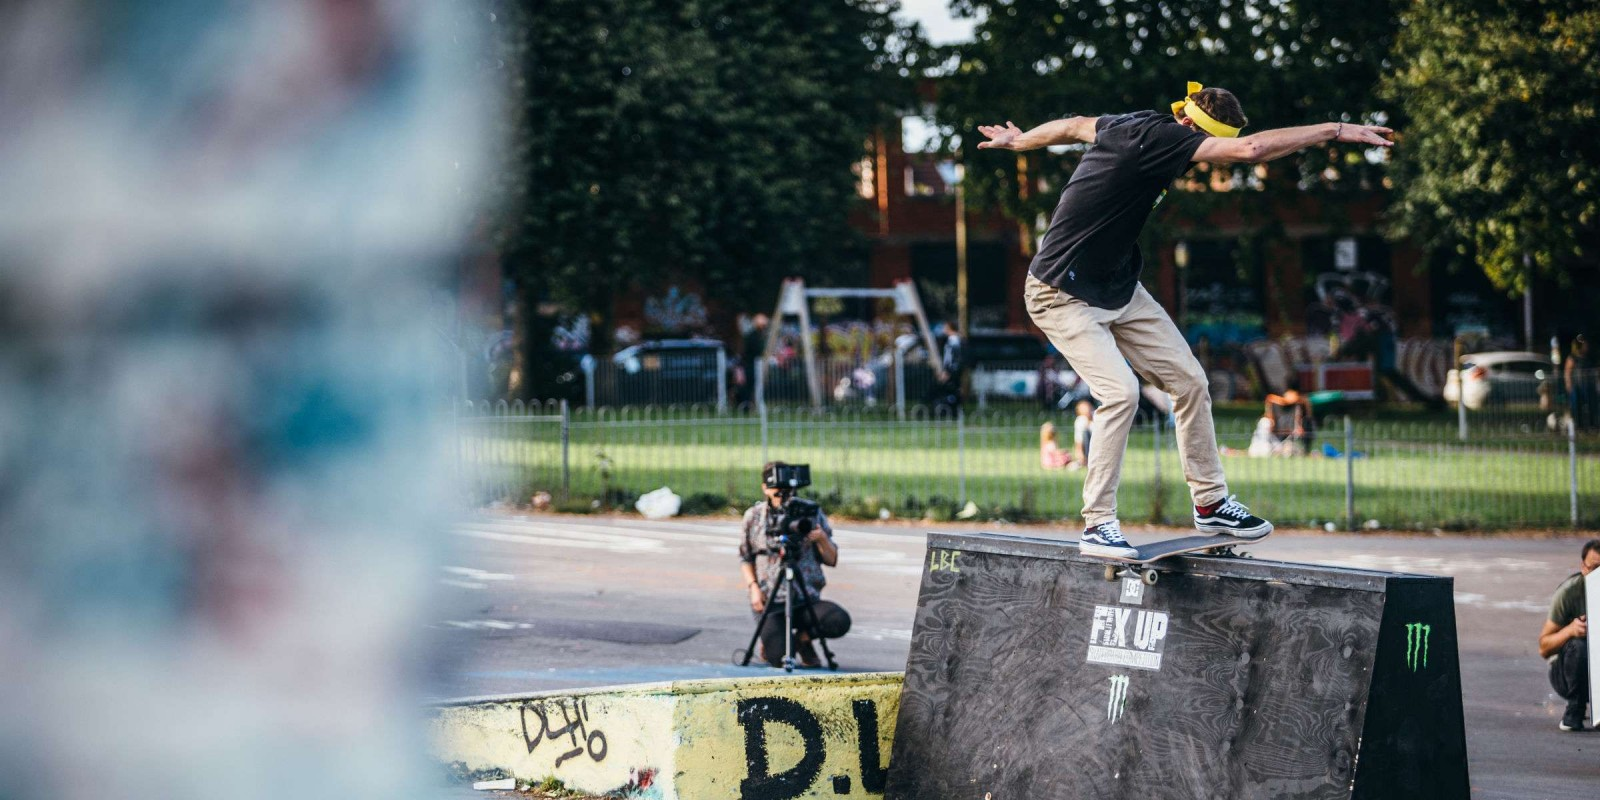 Photo of skateboarder taking part in Fix Up Event